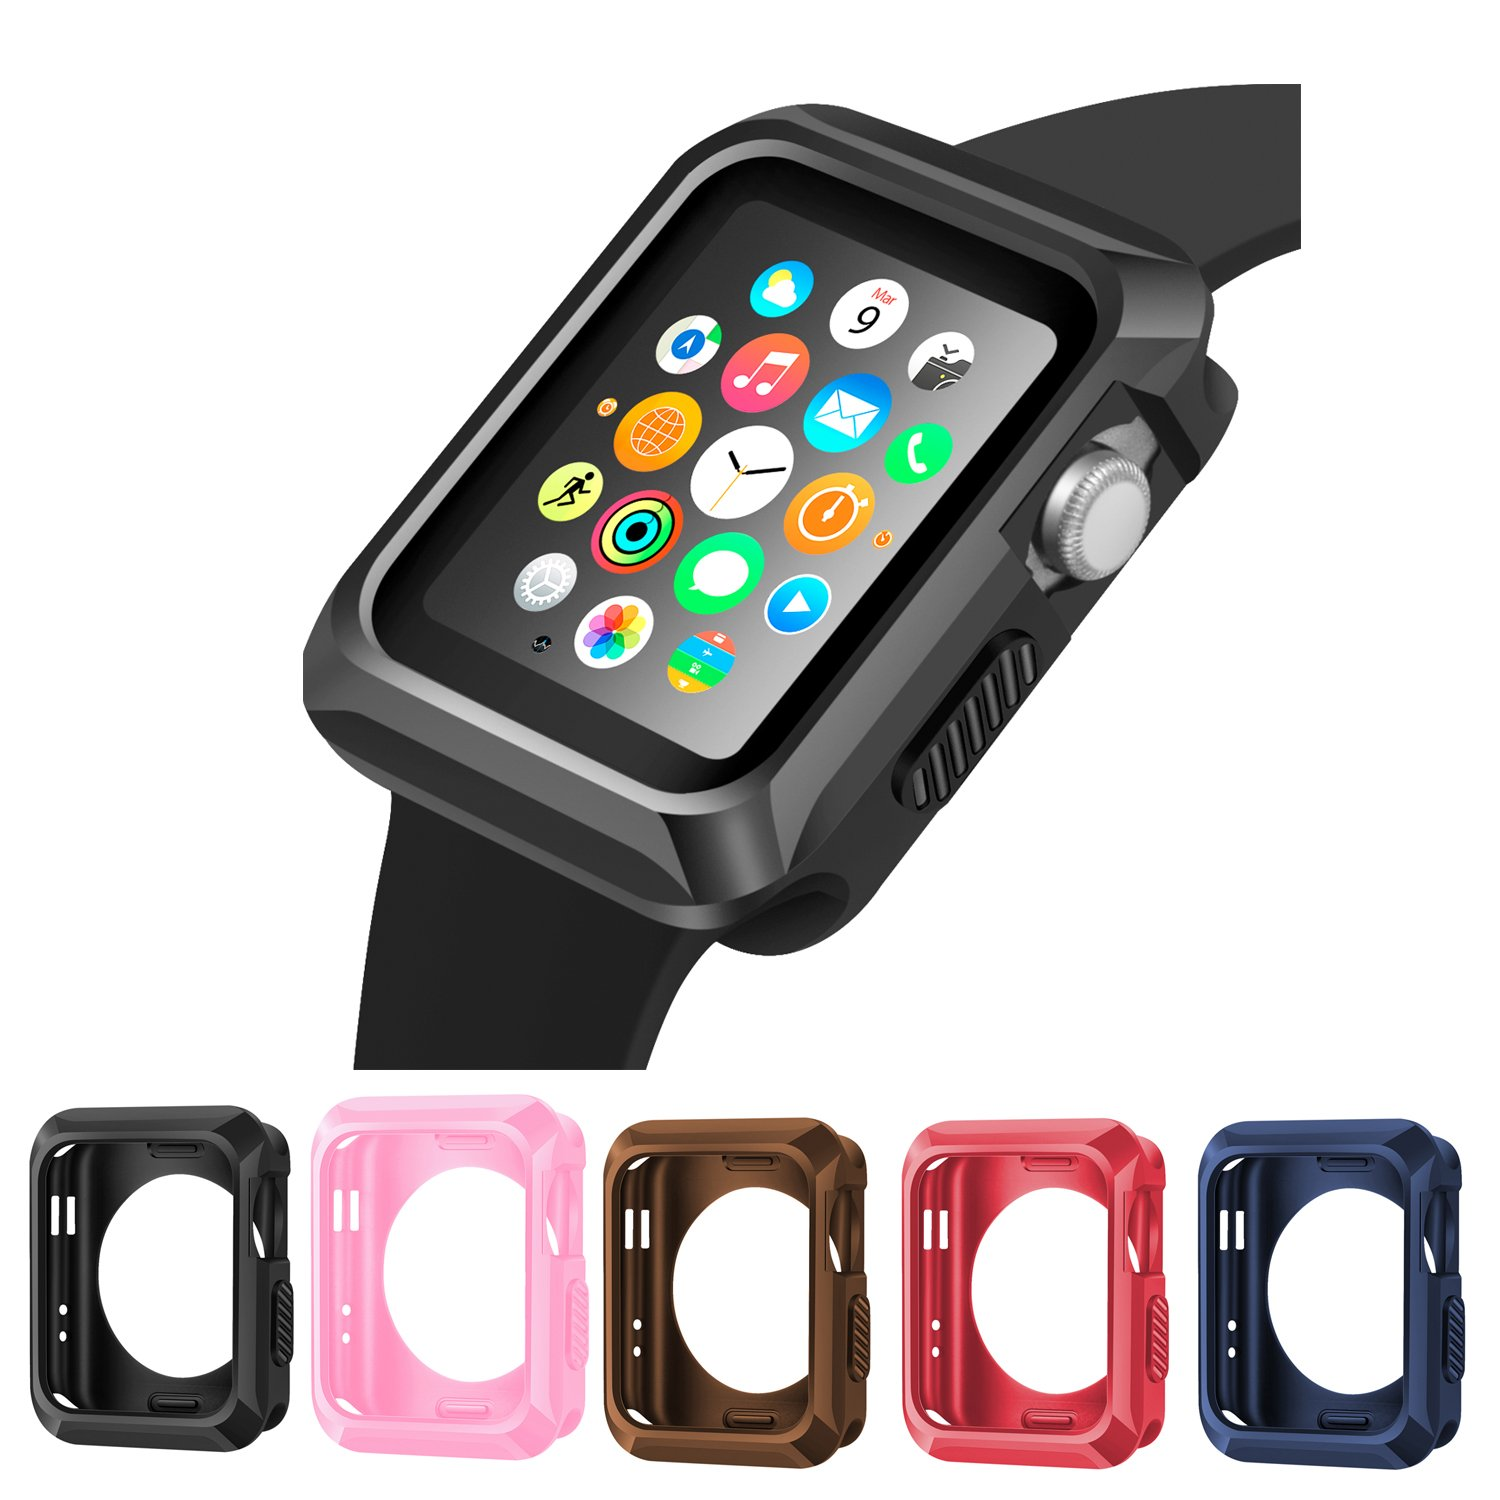 iiteeology Apple Watch Case, Universal Slim Rugged Protective TPU iWatch Case -5 Color Combination Pack for Apple Watch Series 3/2/1 (38mm)